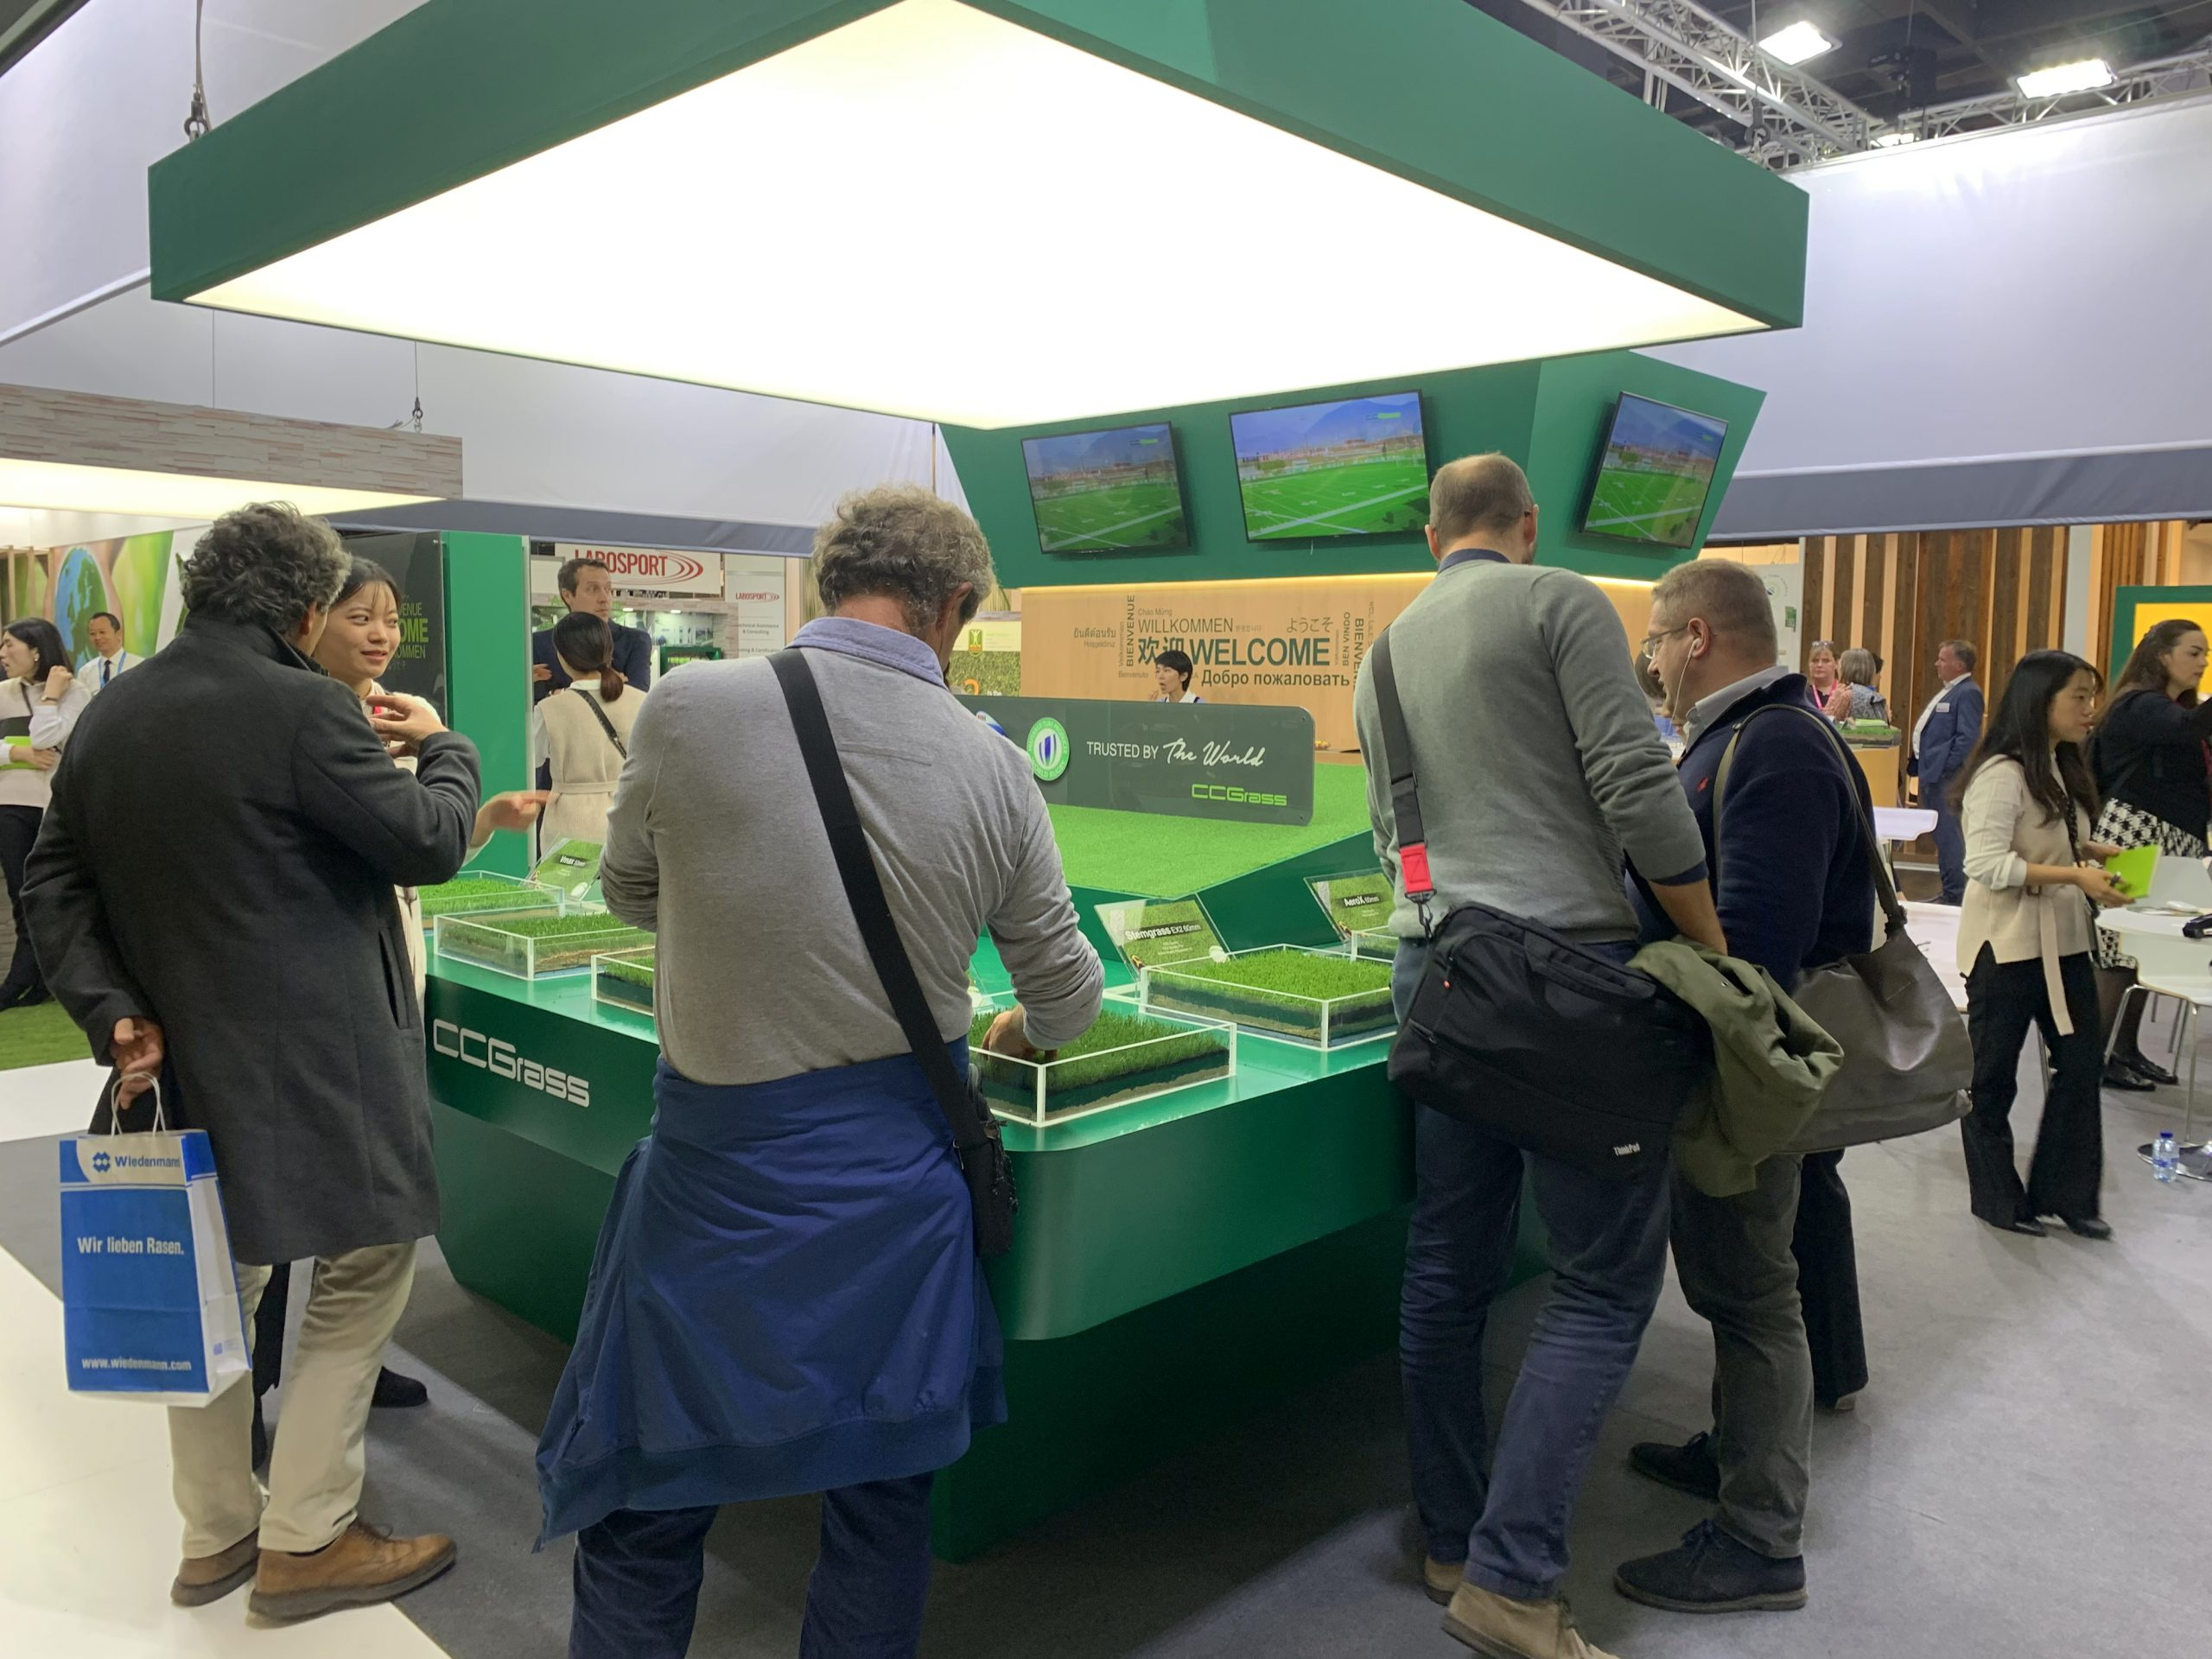 CCGrass at this year's FSB exhibition in Cologne